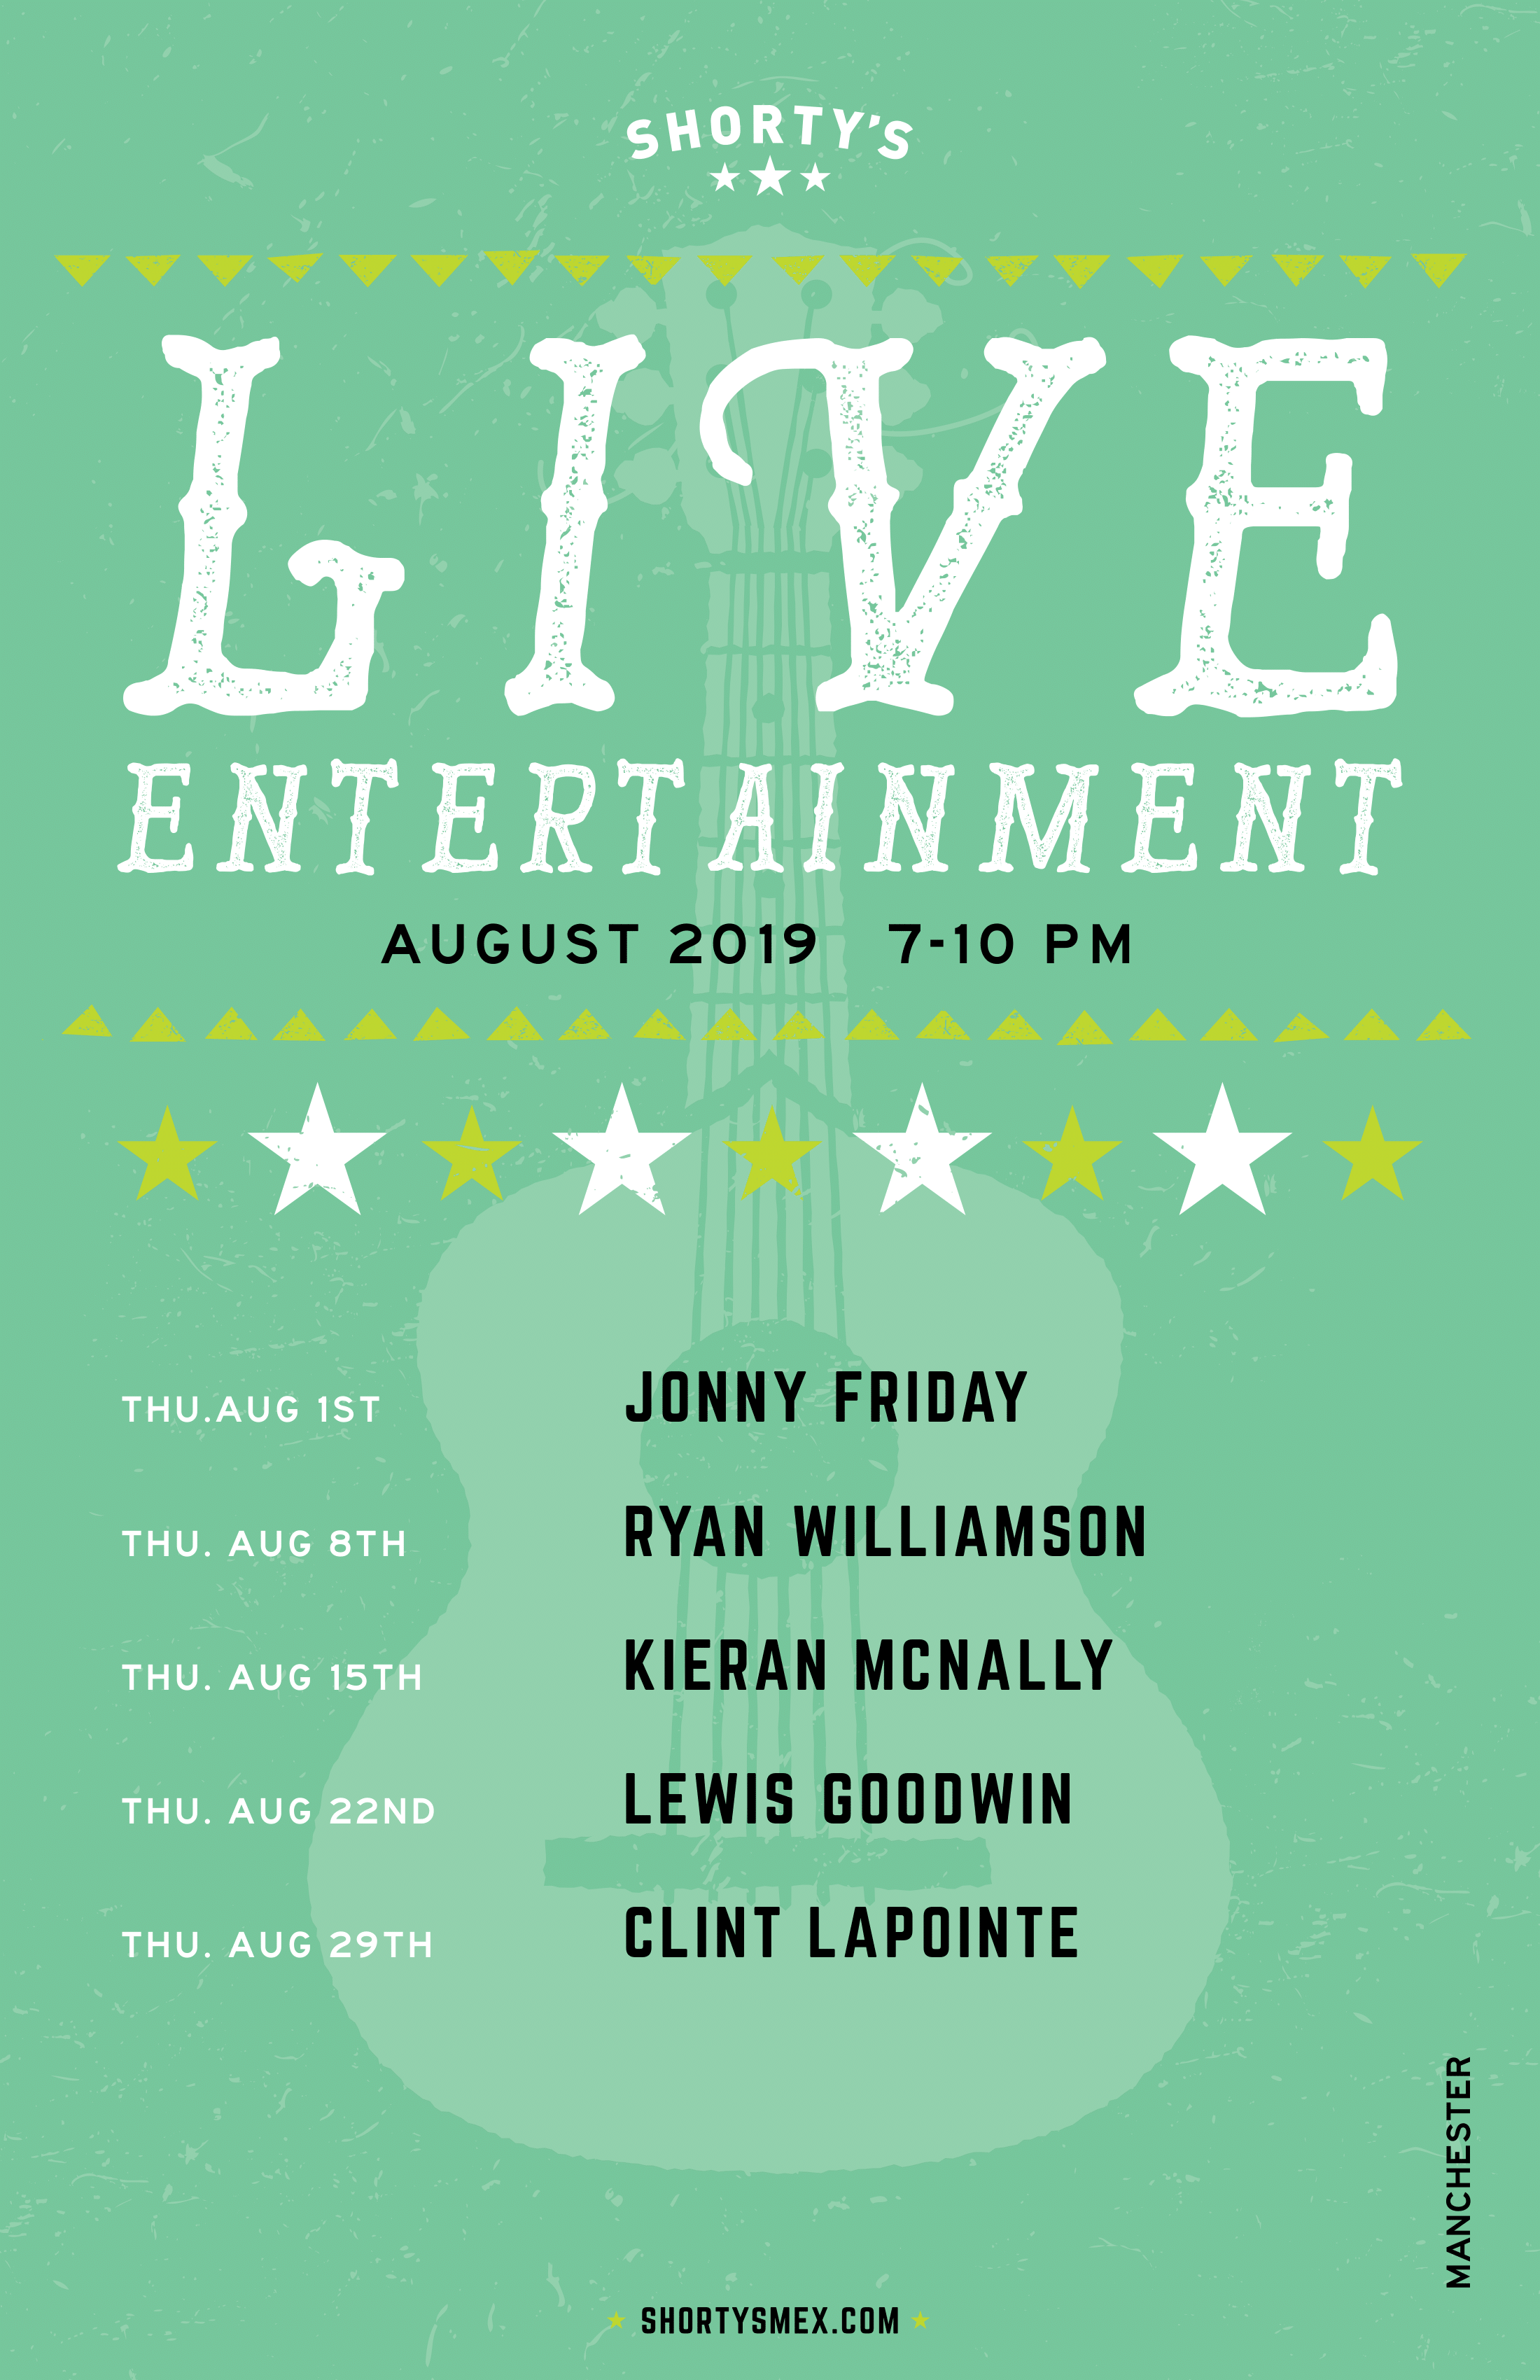 August Entertainment Schedule for Shorty's Manchester